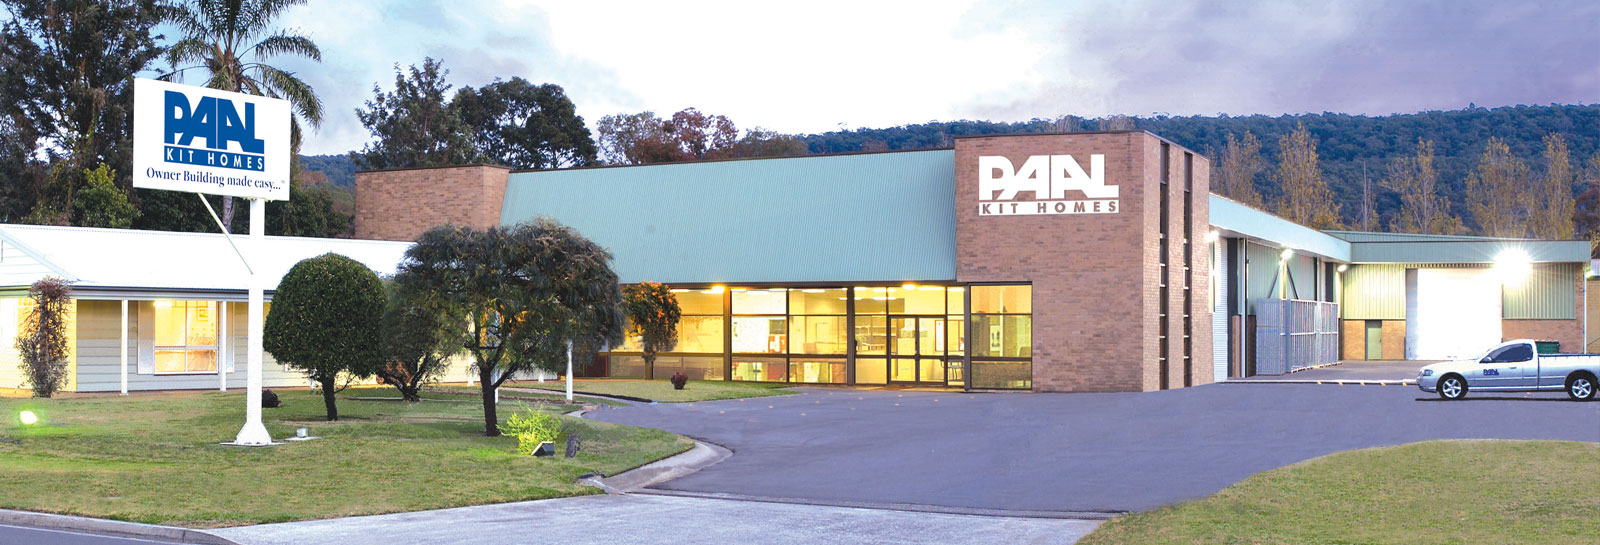 PAAL kit homes, Australia's leading manufacturer of steel framed kit homes, specifically designed for the owner builder and owner manager. PAAL Australia NSW, VIC, QLD.